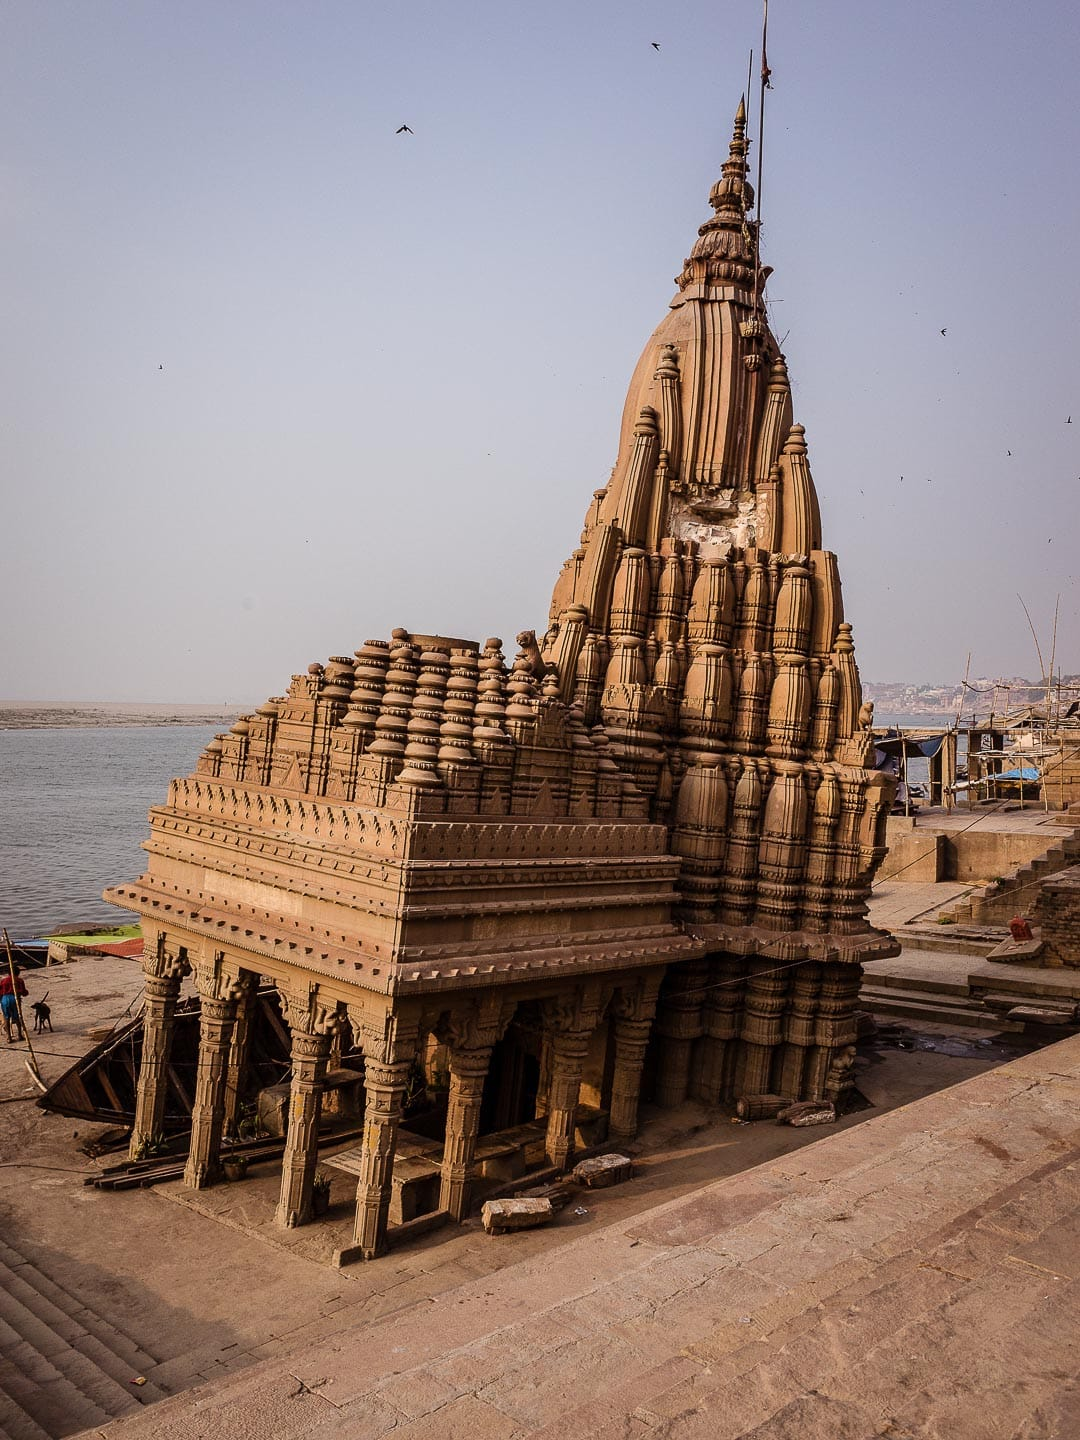 A sinking temple along the ghats near the Ganges in Varanasi